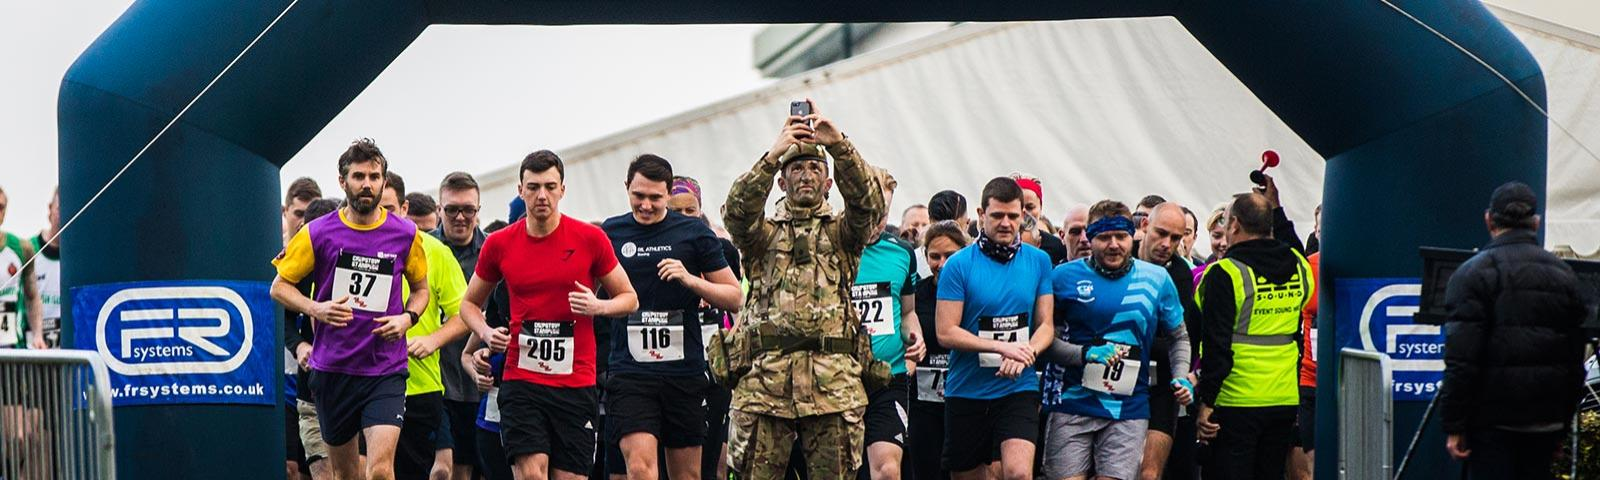 A soldier in camouflage takes a selfie as the stamped gets underway with lots of other competitors in standard running attire